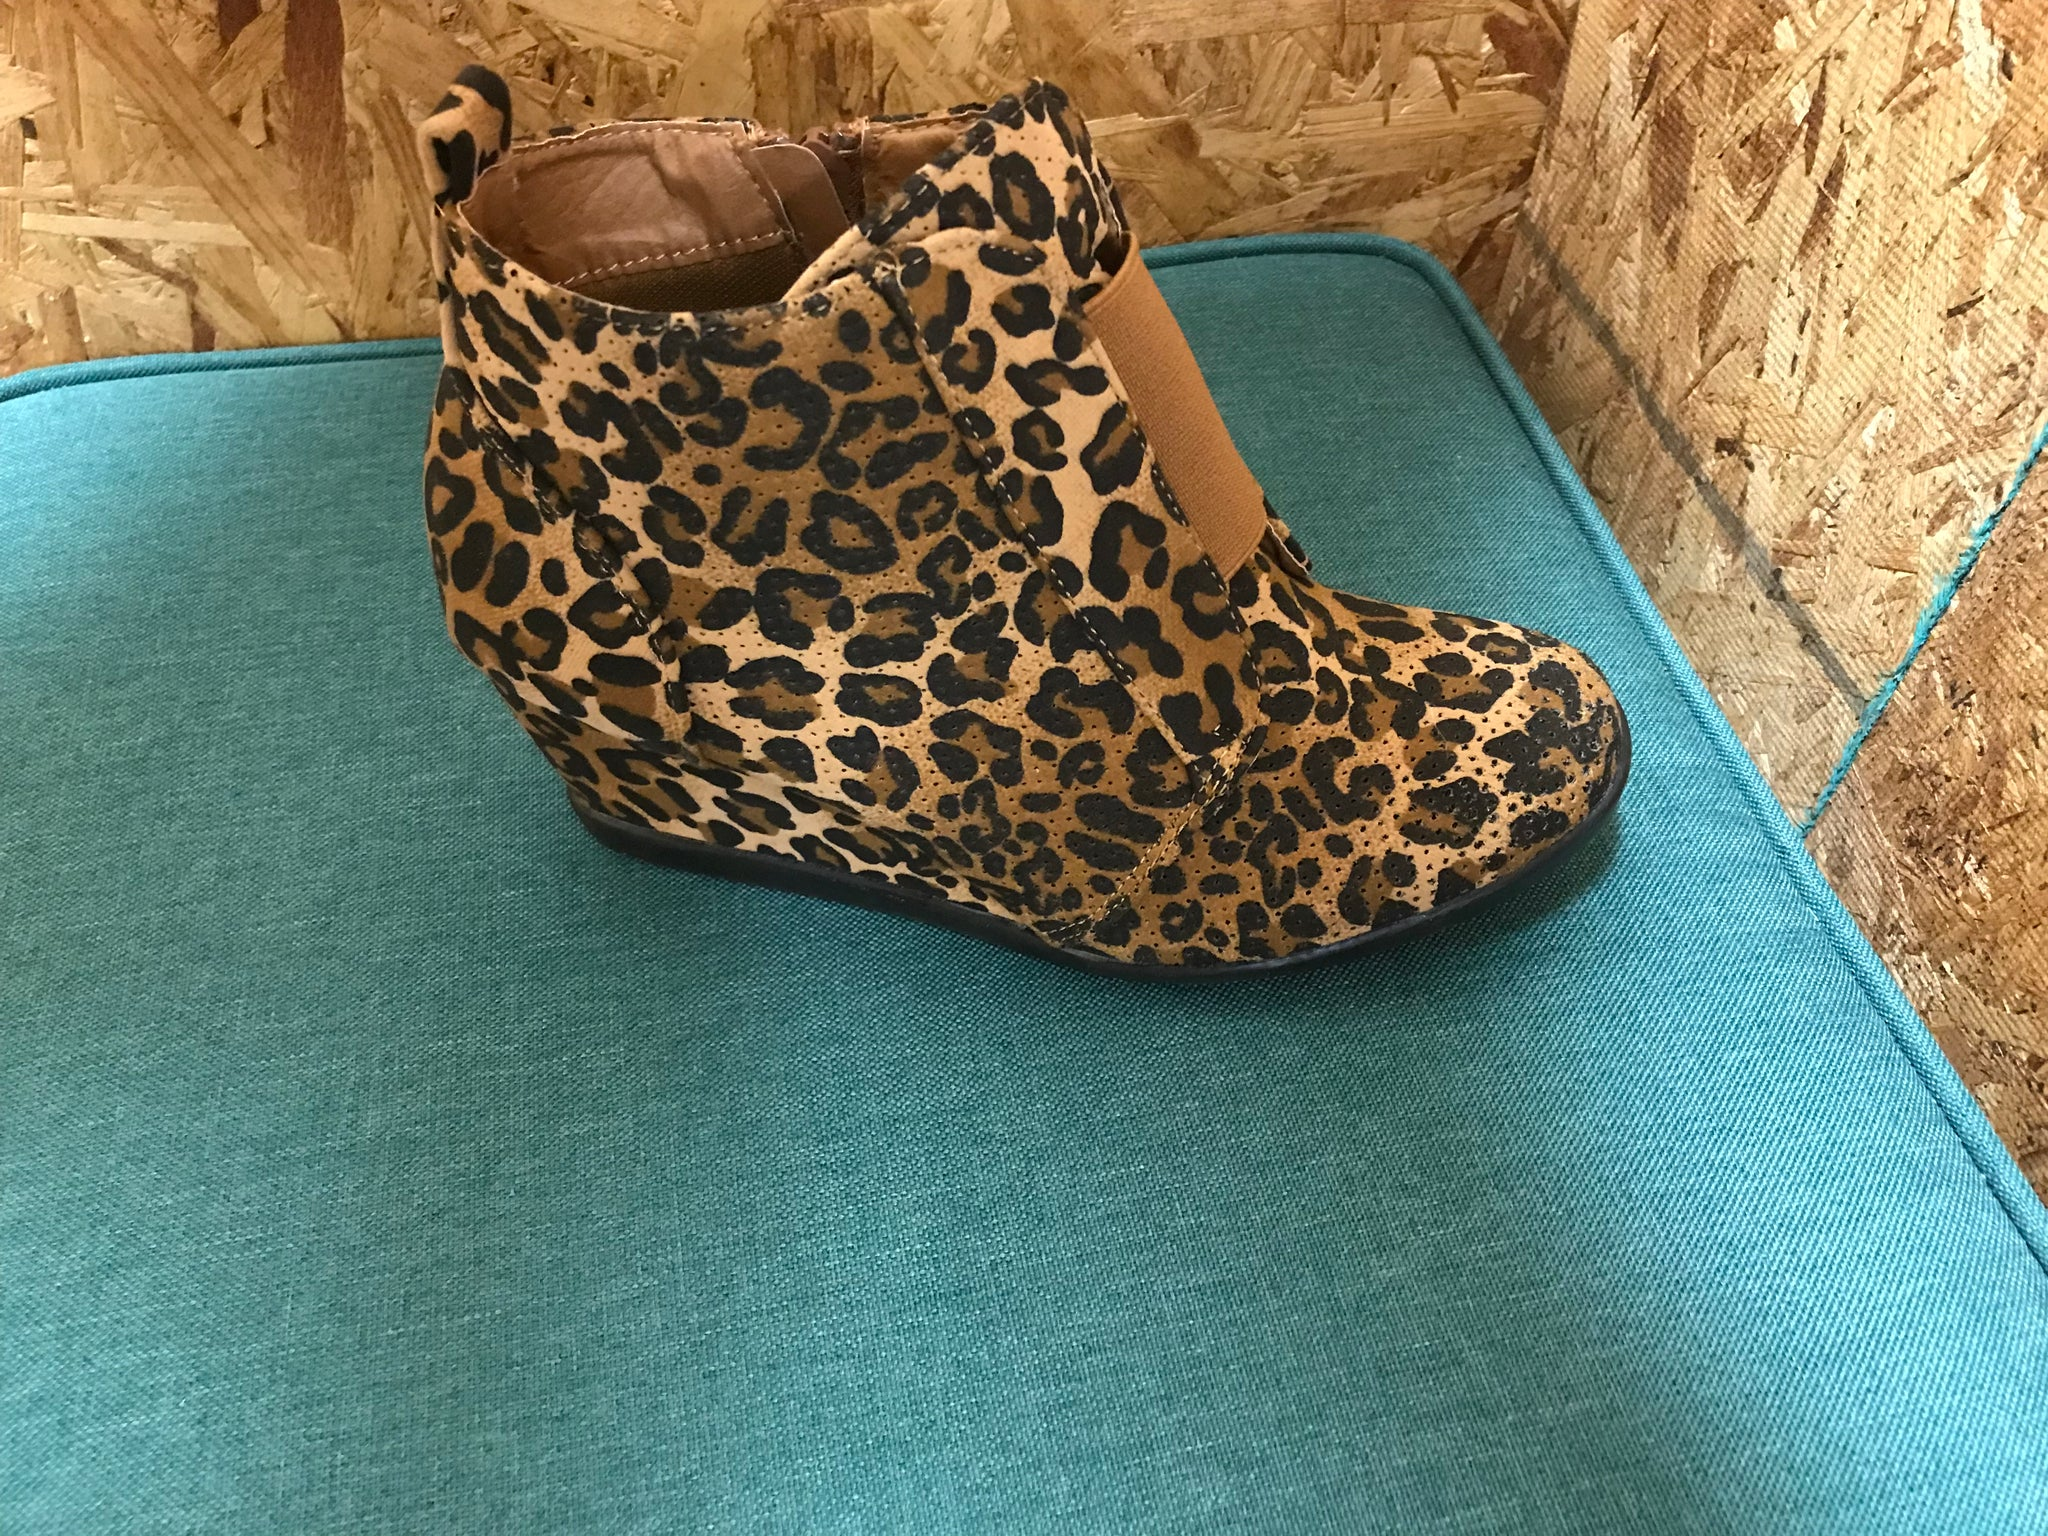 Leopard Wedge Shoe Has elastic strap across the top